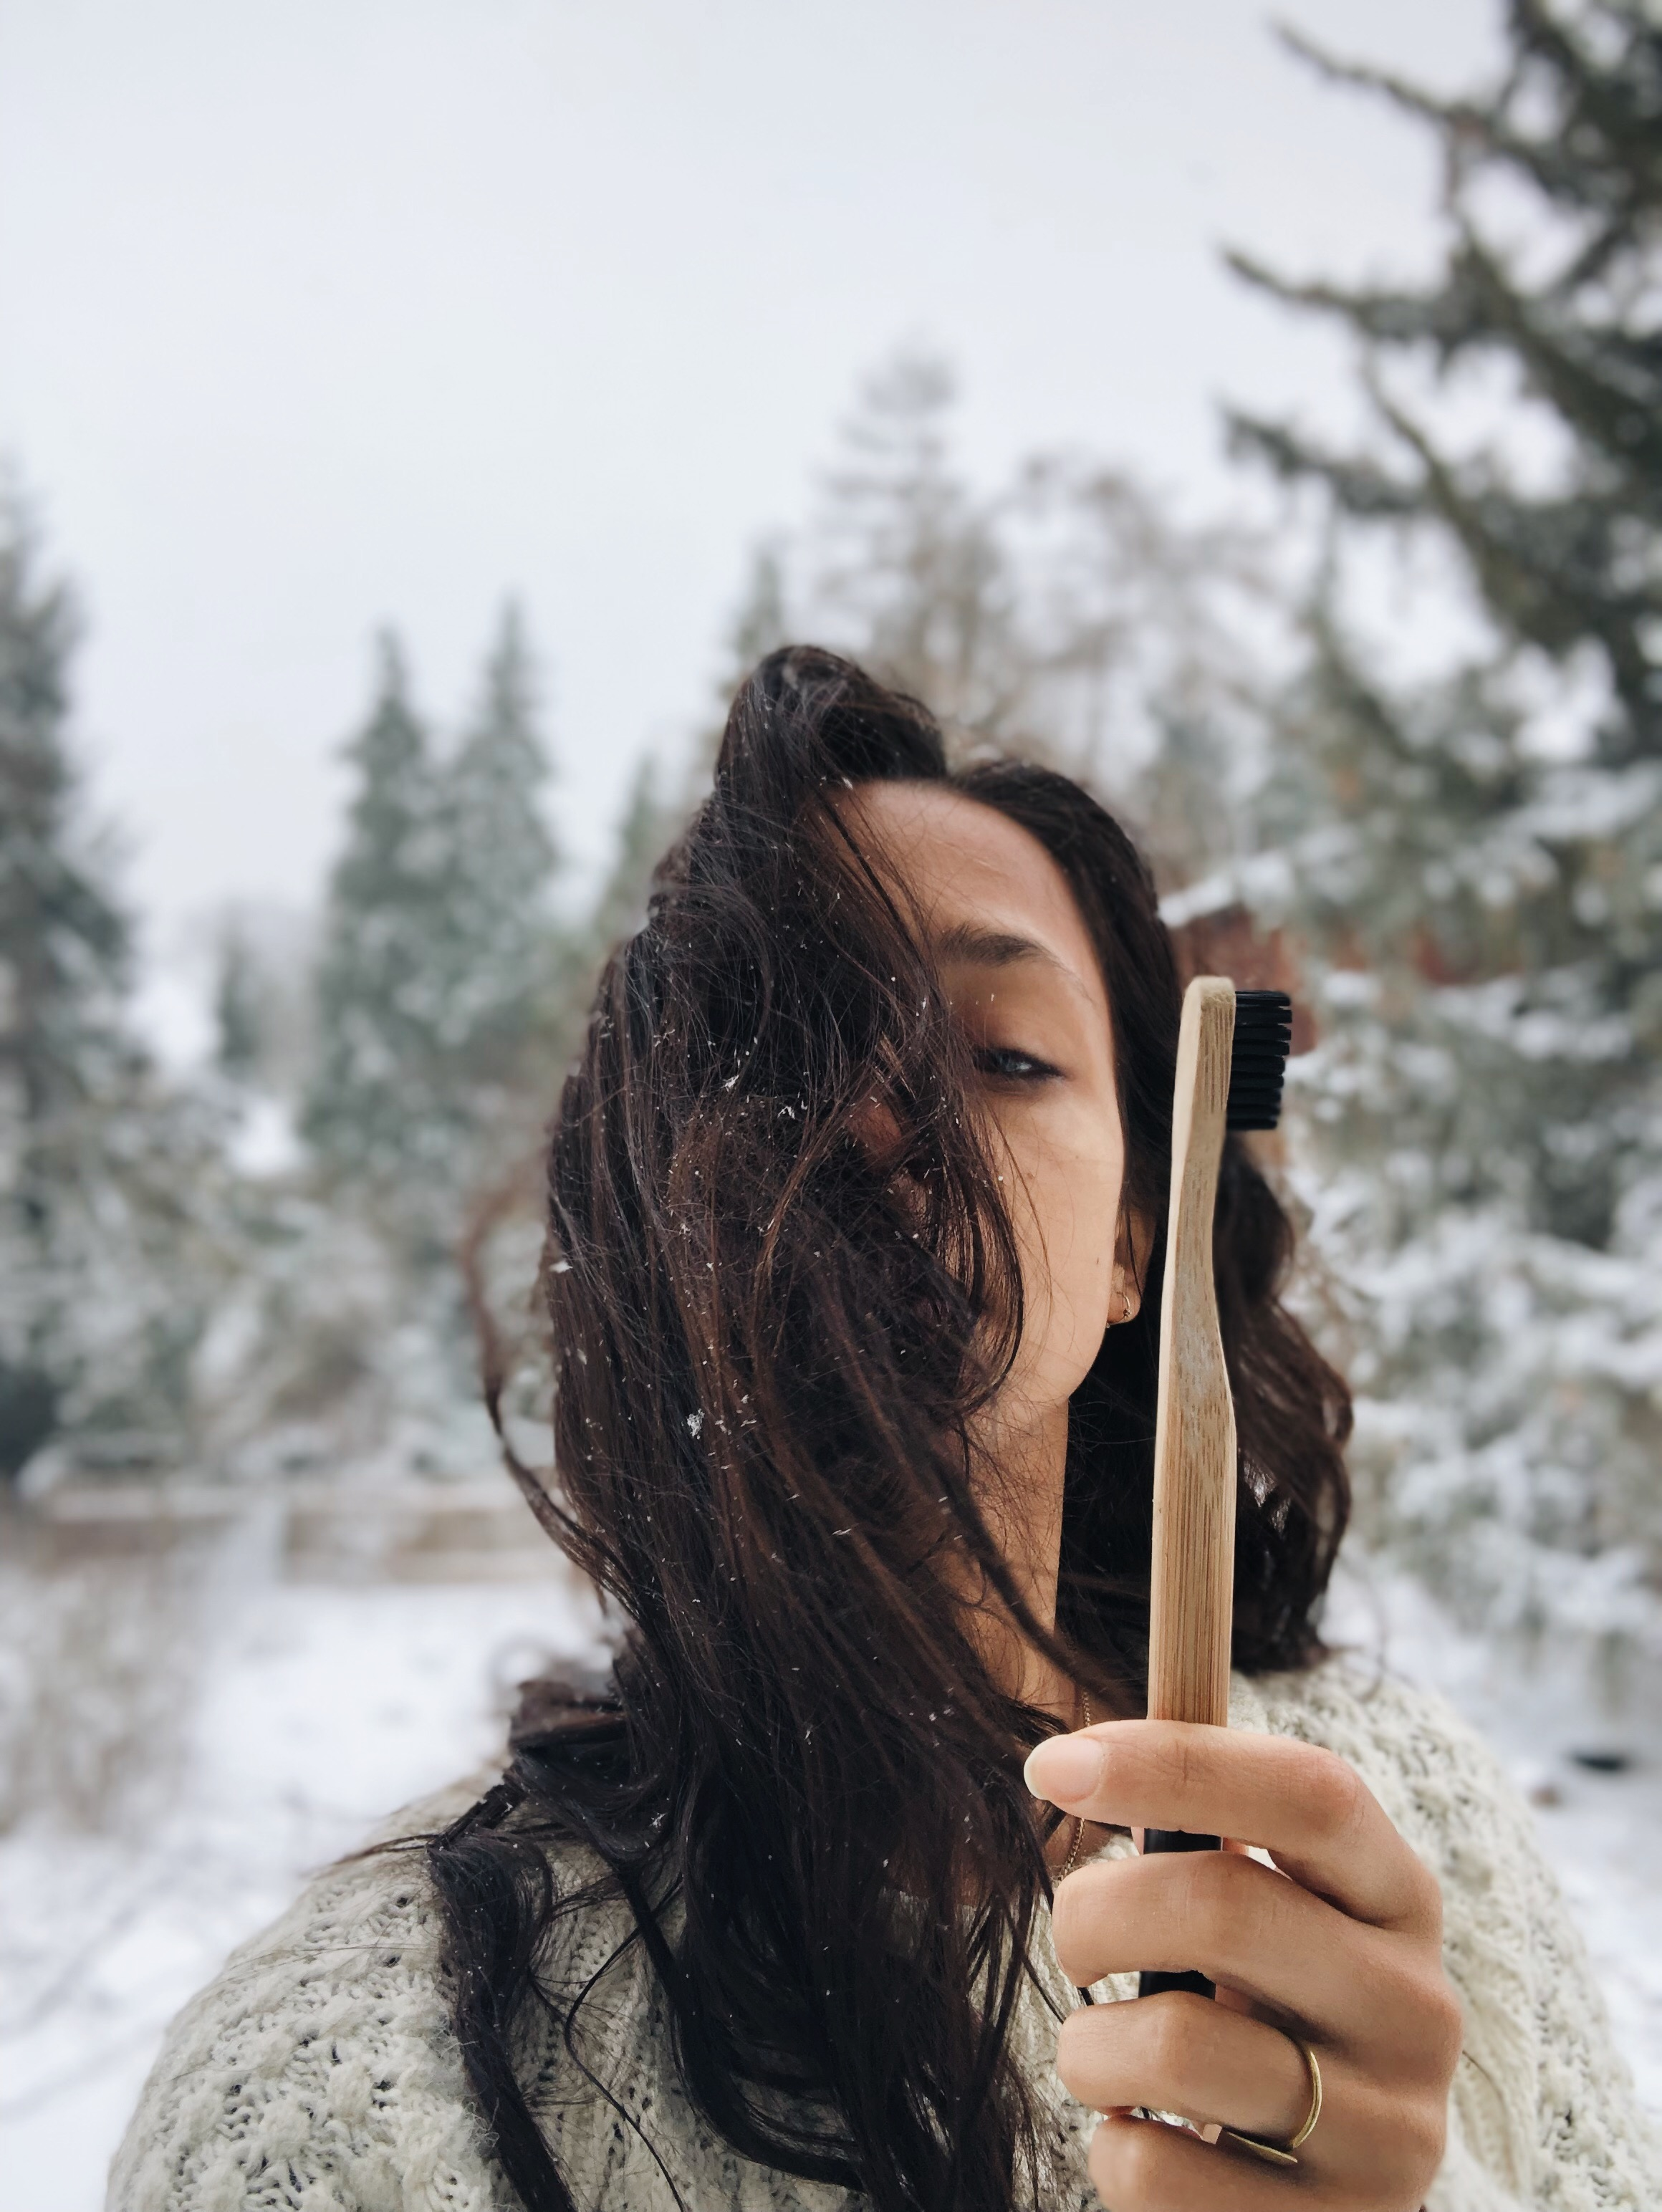 Holding my bamboo and charcoal toothbrush proudly in the snow like a bellend.